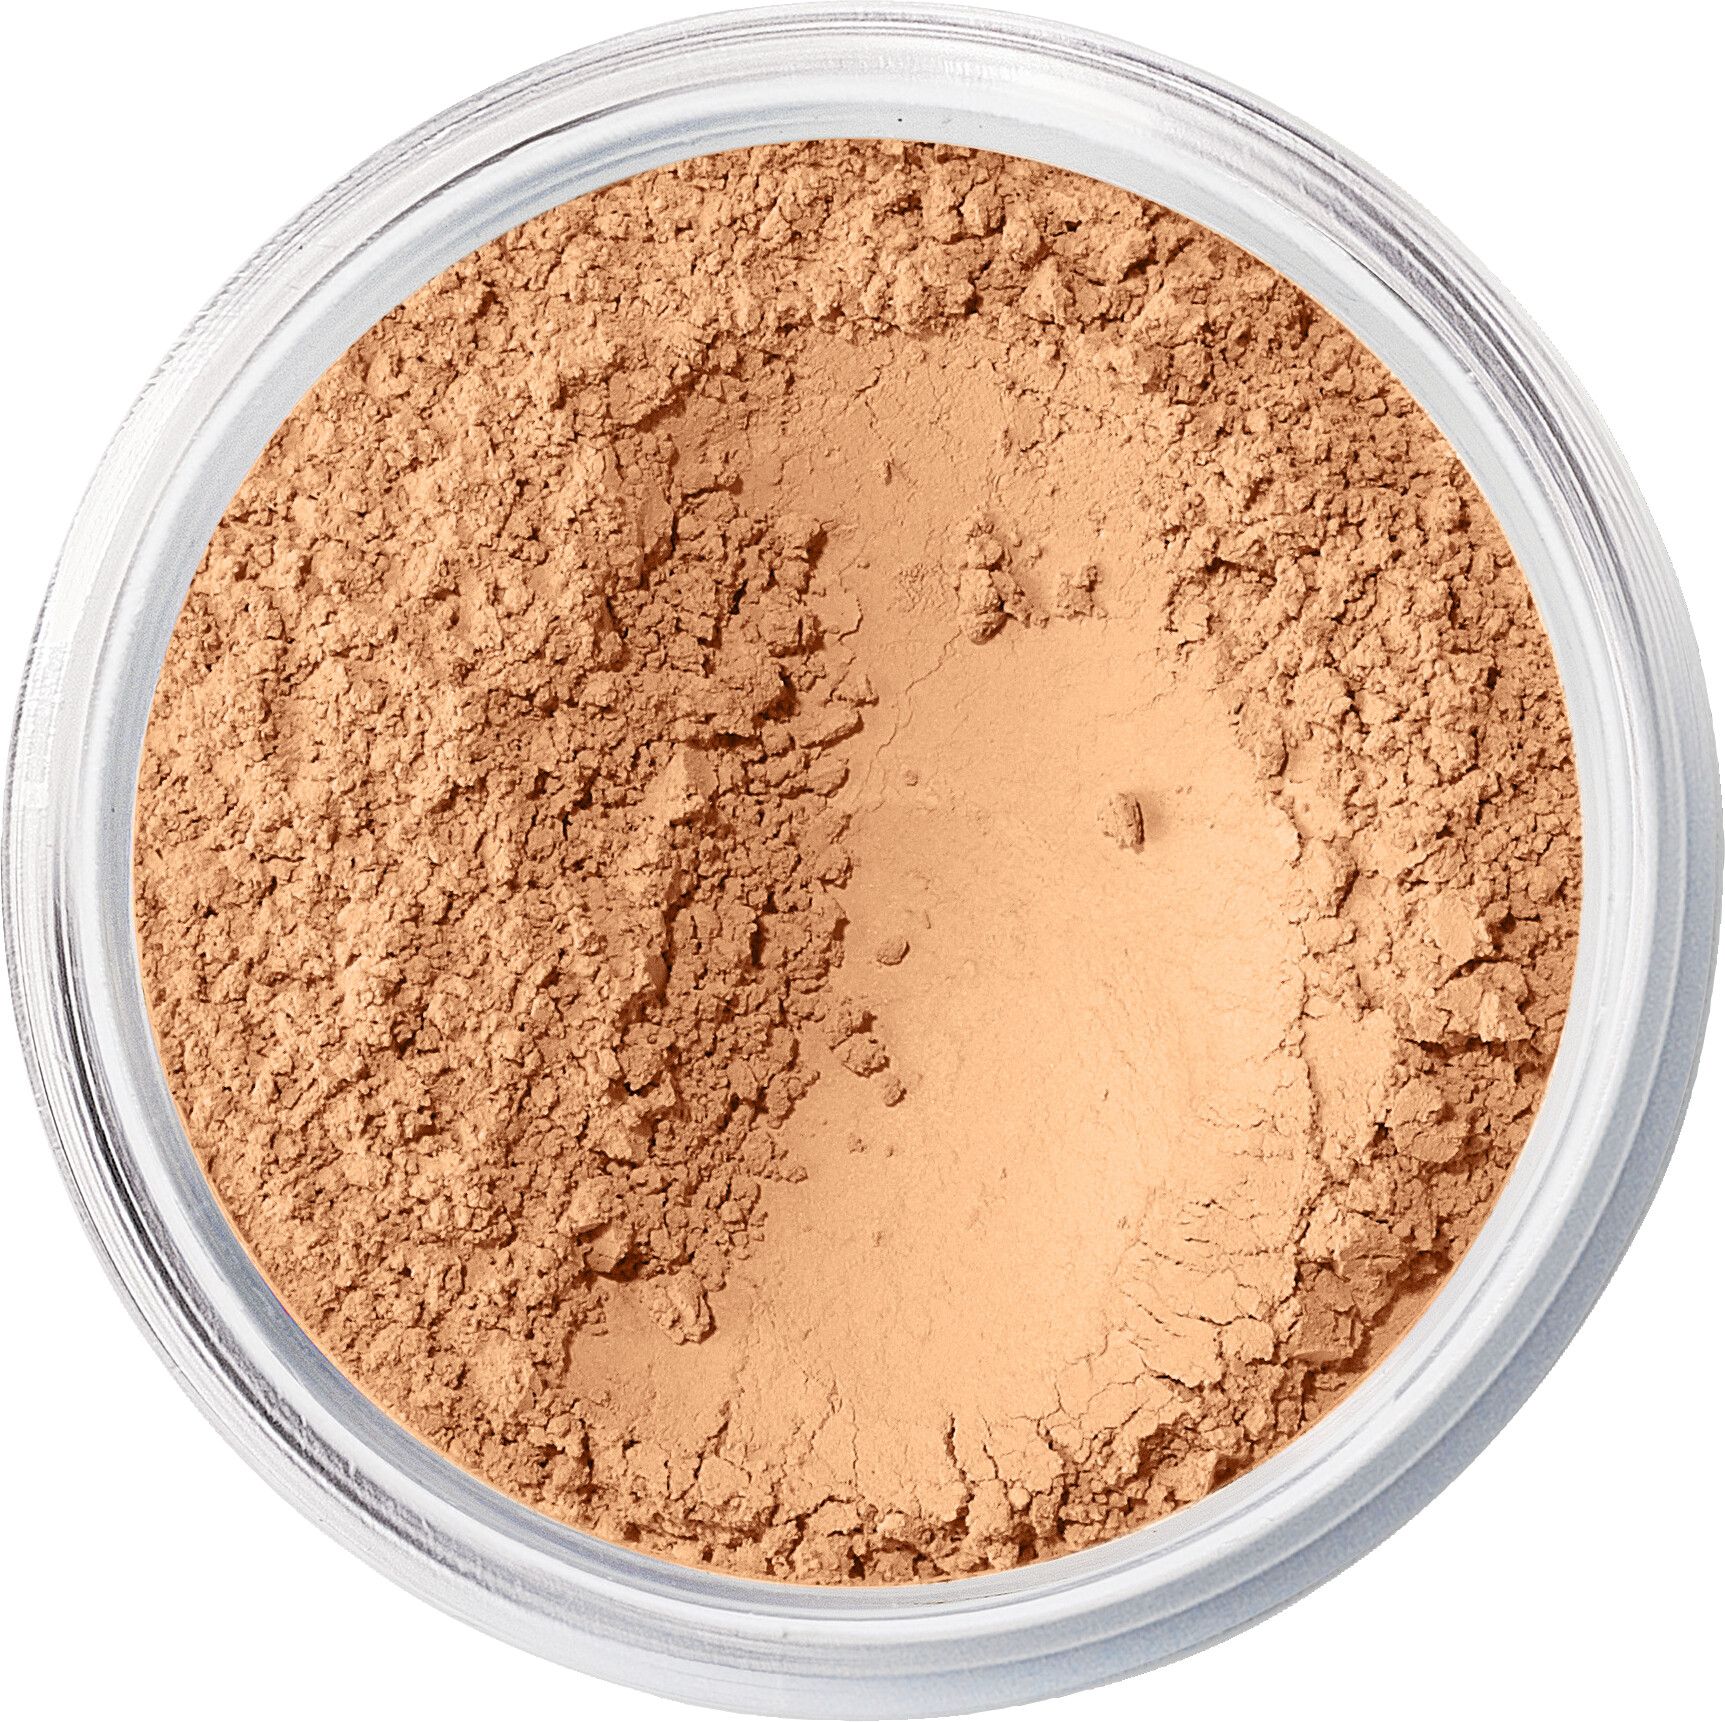 bareMinerals Original SPF15 Foundation with Locking Sifter 8g 17  Tan Nude